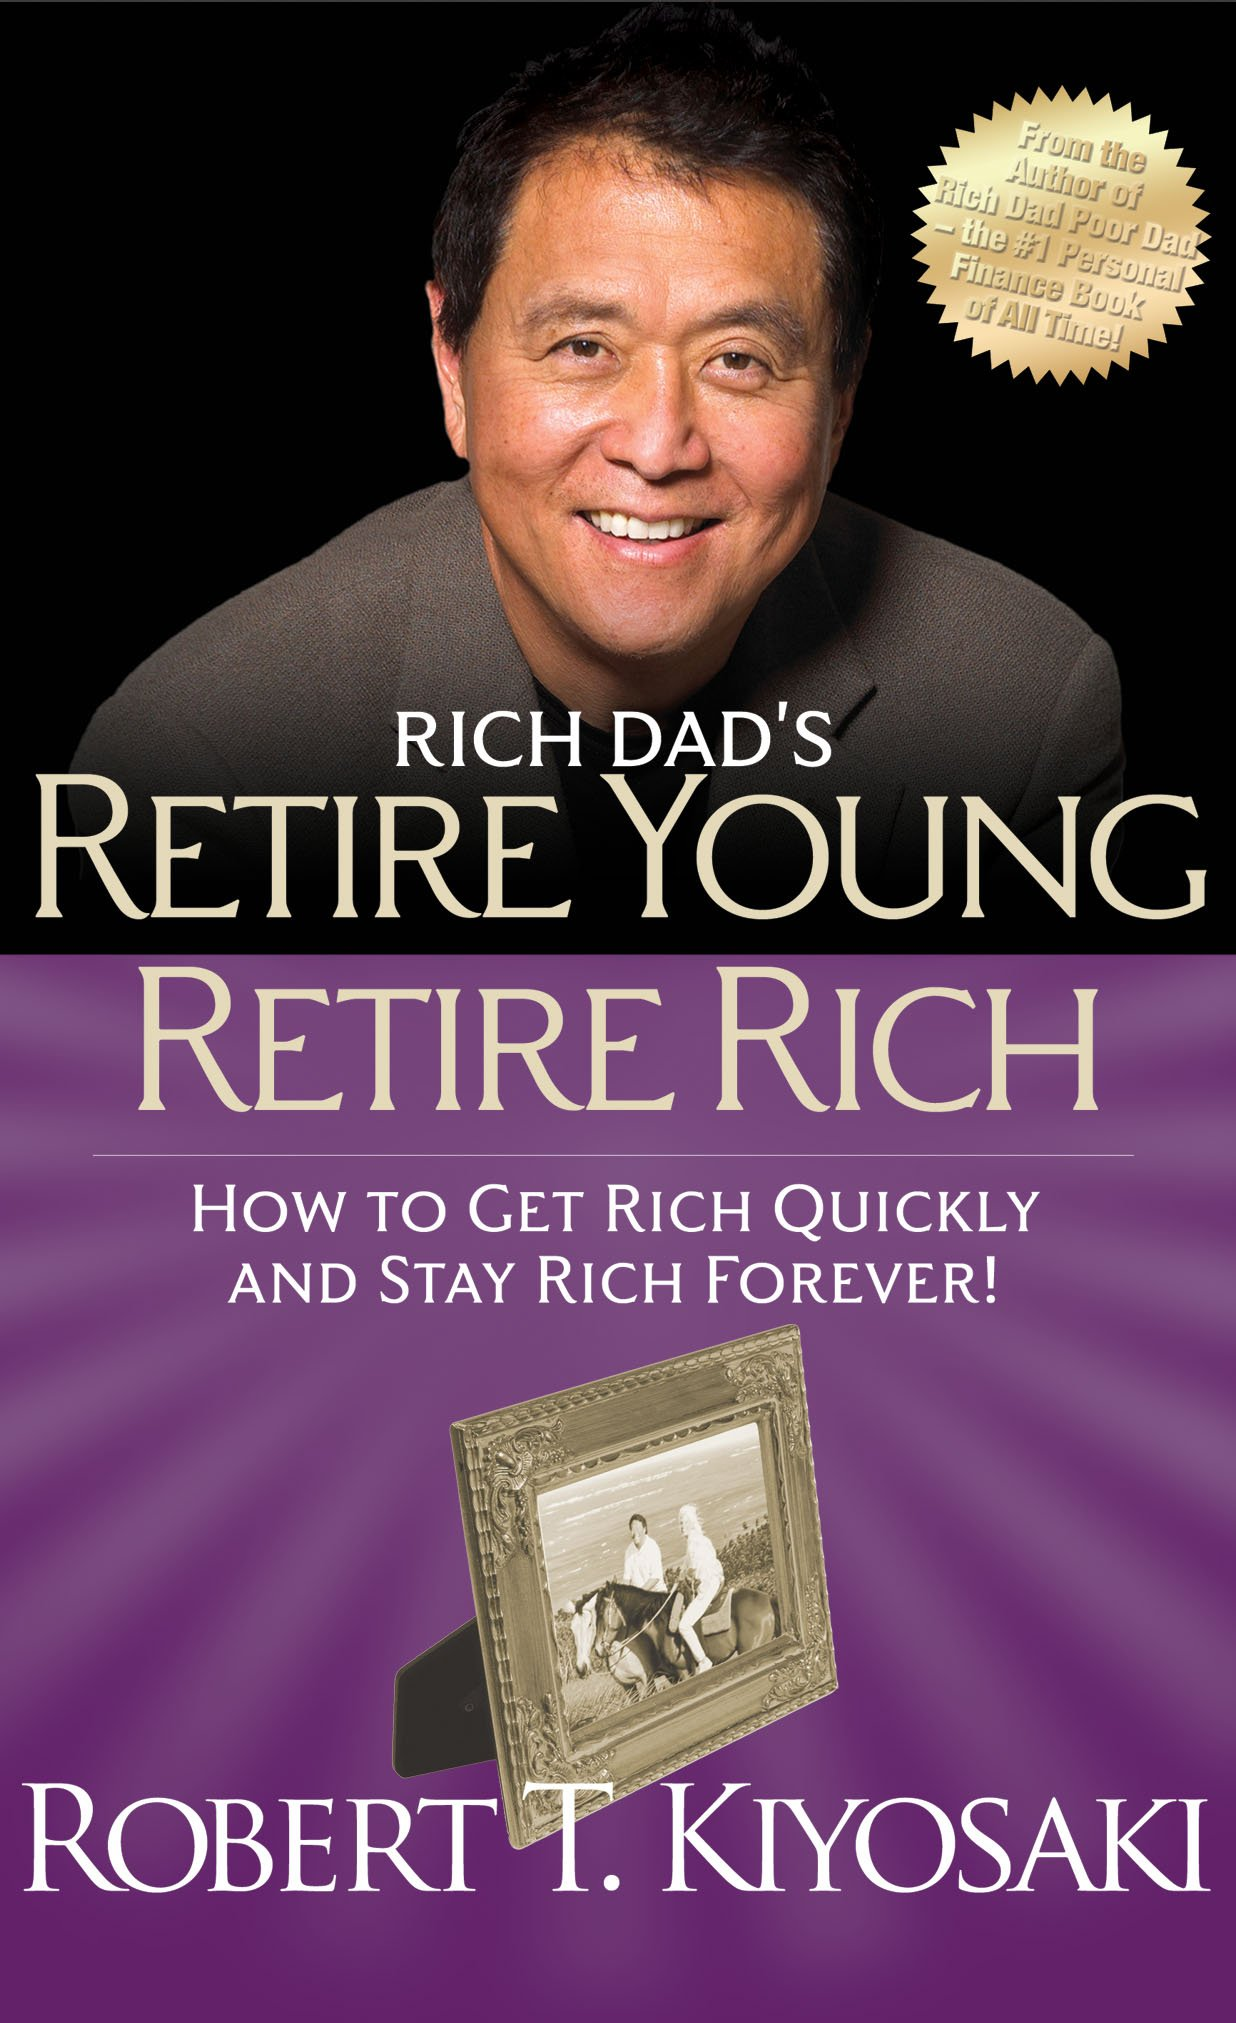 Retire Rich Invest Rs. 40 A Day Pdf